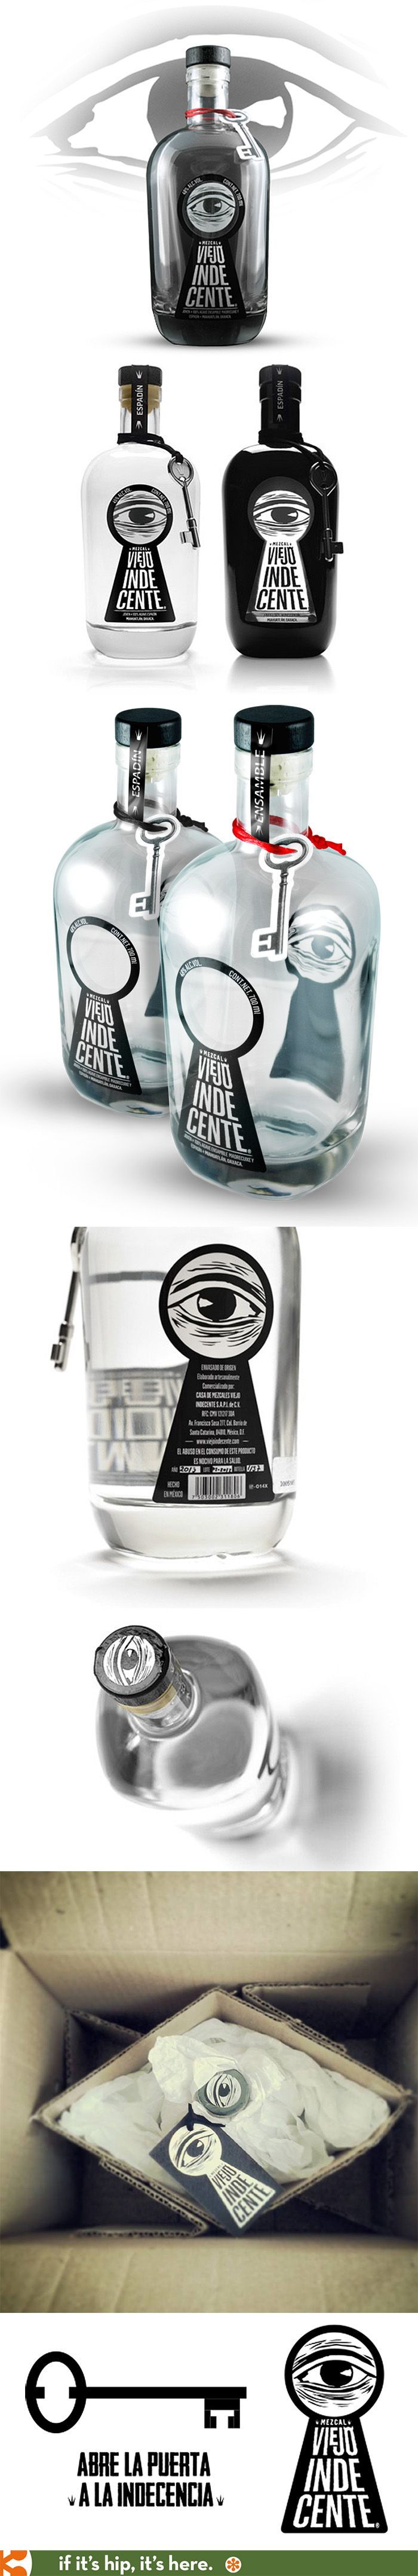 "Una bottiglia piena di design per un liquore messicano! ""Fabulous bottle designs…"